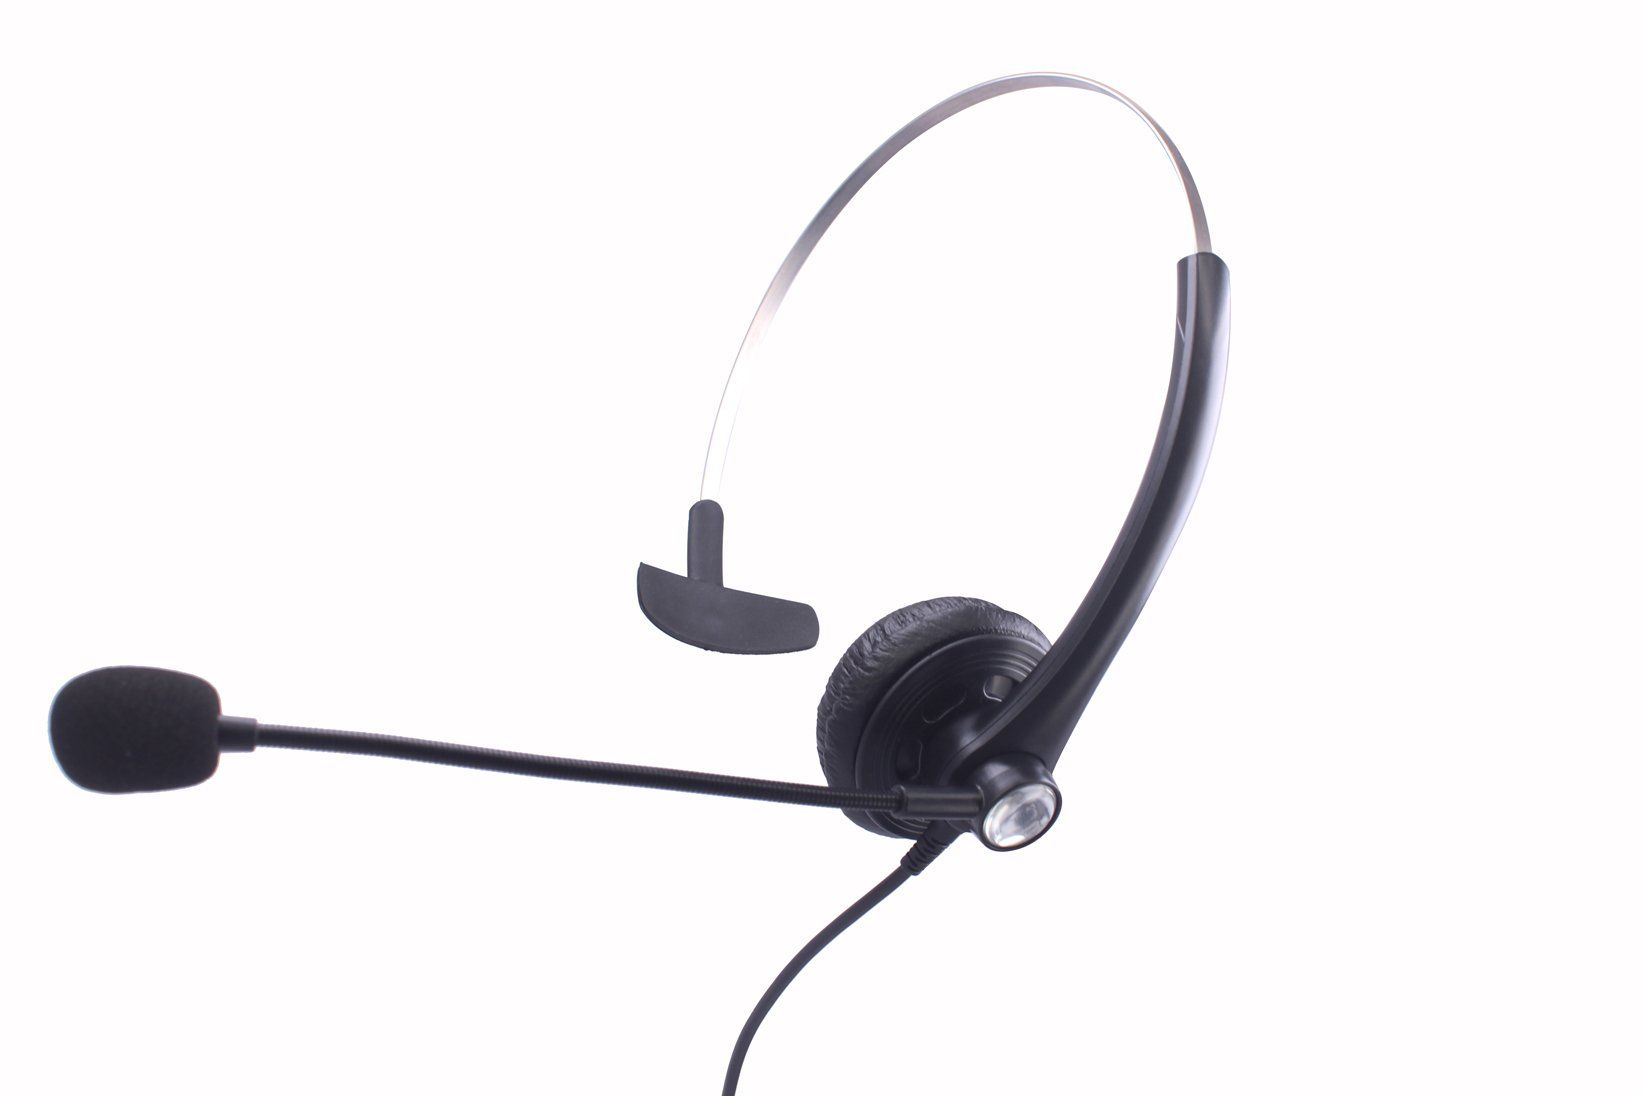 Fivetech Telephone Headset For Avaya Ip Phones 1608 1616 9601 9608 9610 9611 9611g 9620 9620c 9620l 9621 9630 9640 9640g 9641 For Cisco Voip Telephones Headset